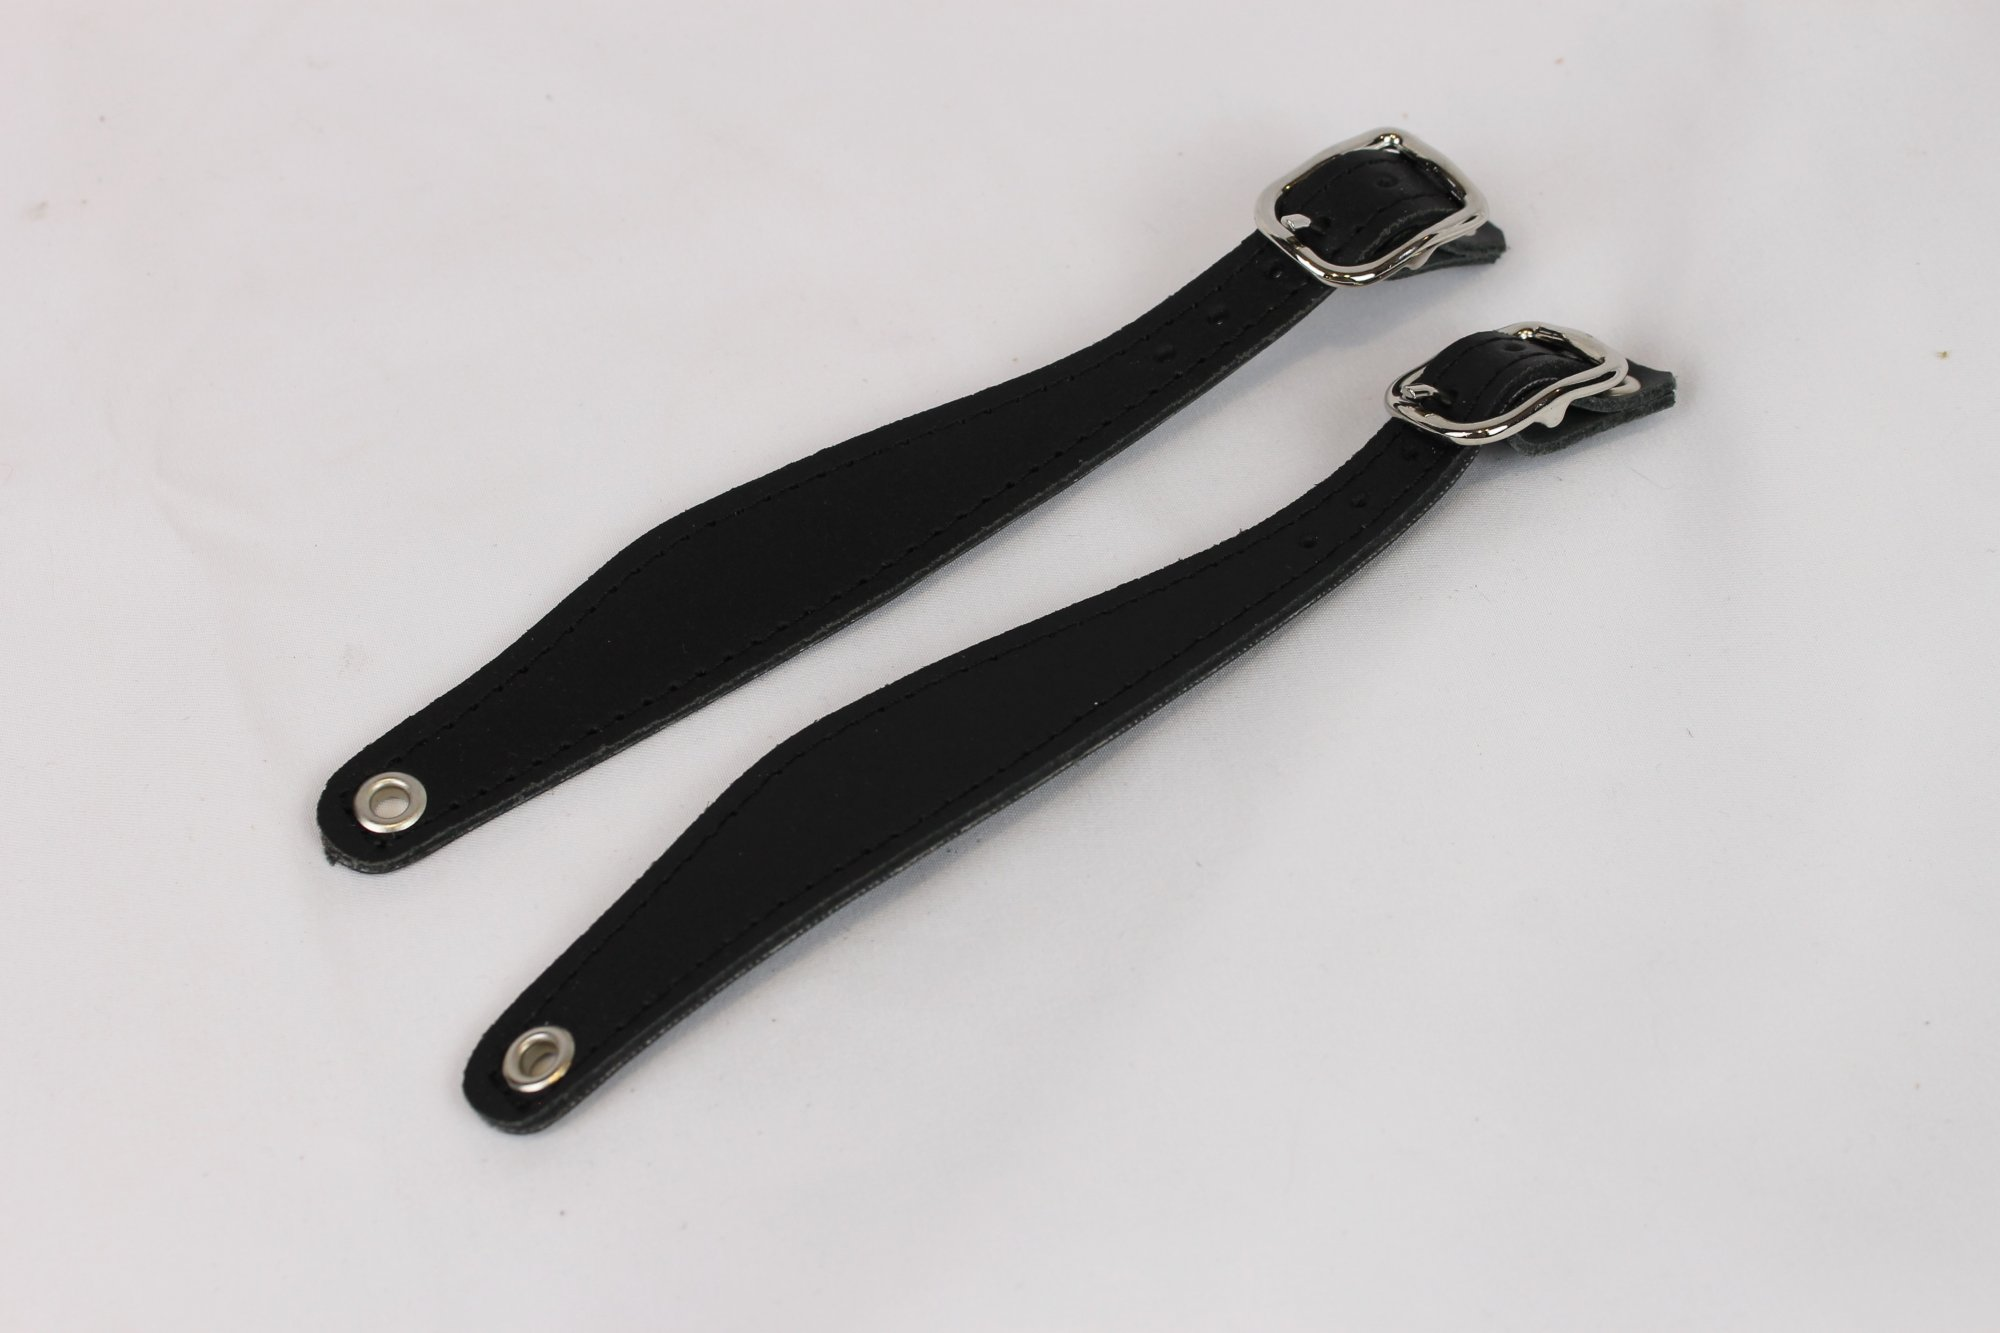 NEW Black Leather Bandoneon Hand Strap - Pair of 2 Pieces